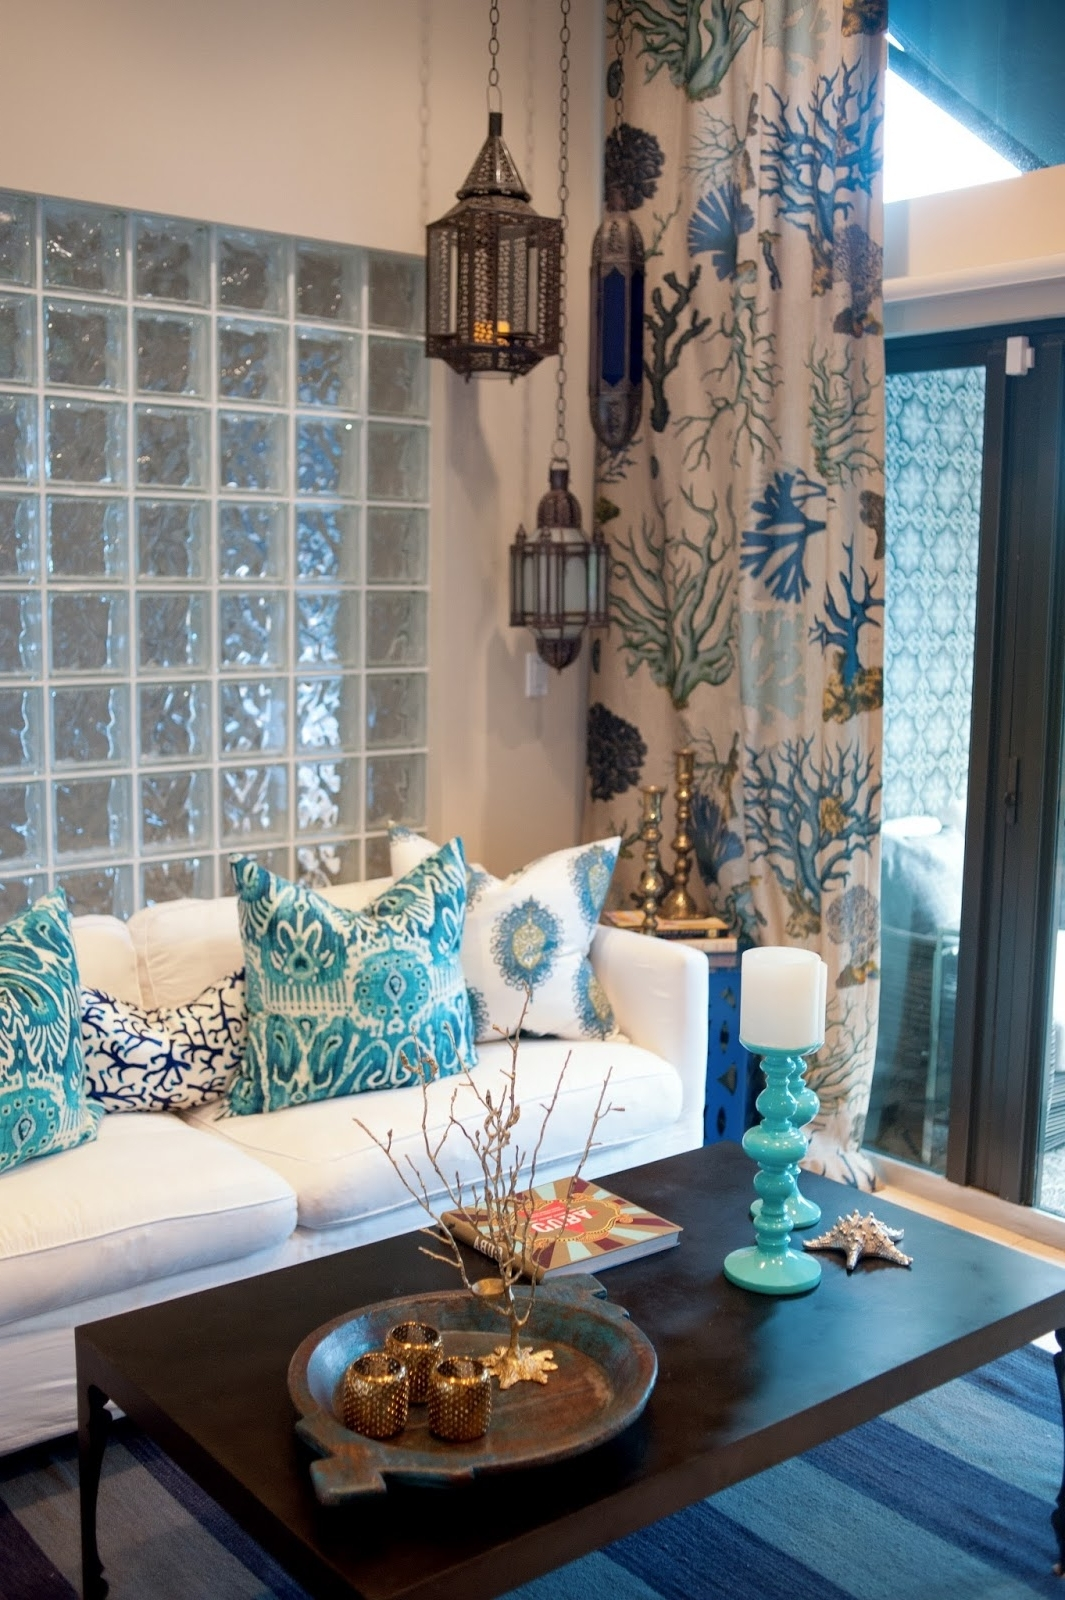 Preferred Outdoor Hanging Moroccan Lanterns For Emejing Hanging Lanterns Indoor Gallery – Decoration Design Ideas (View 15 of 20)